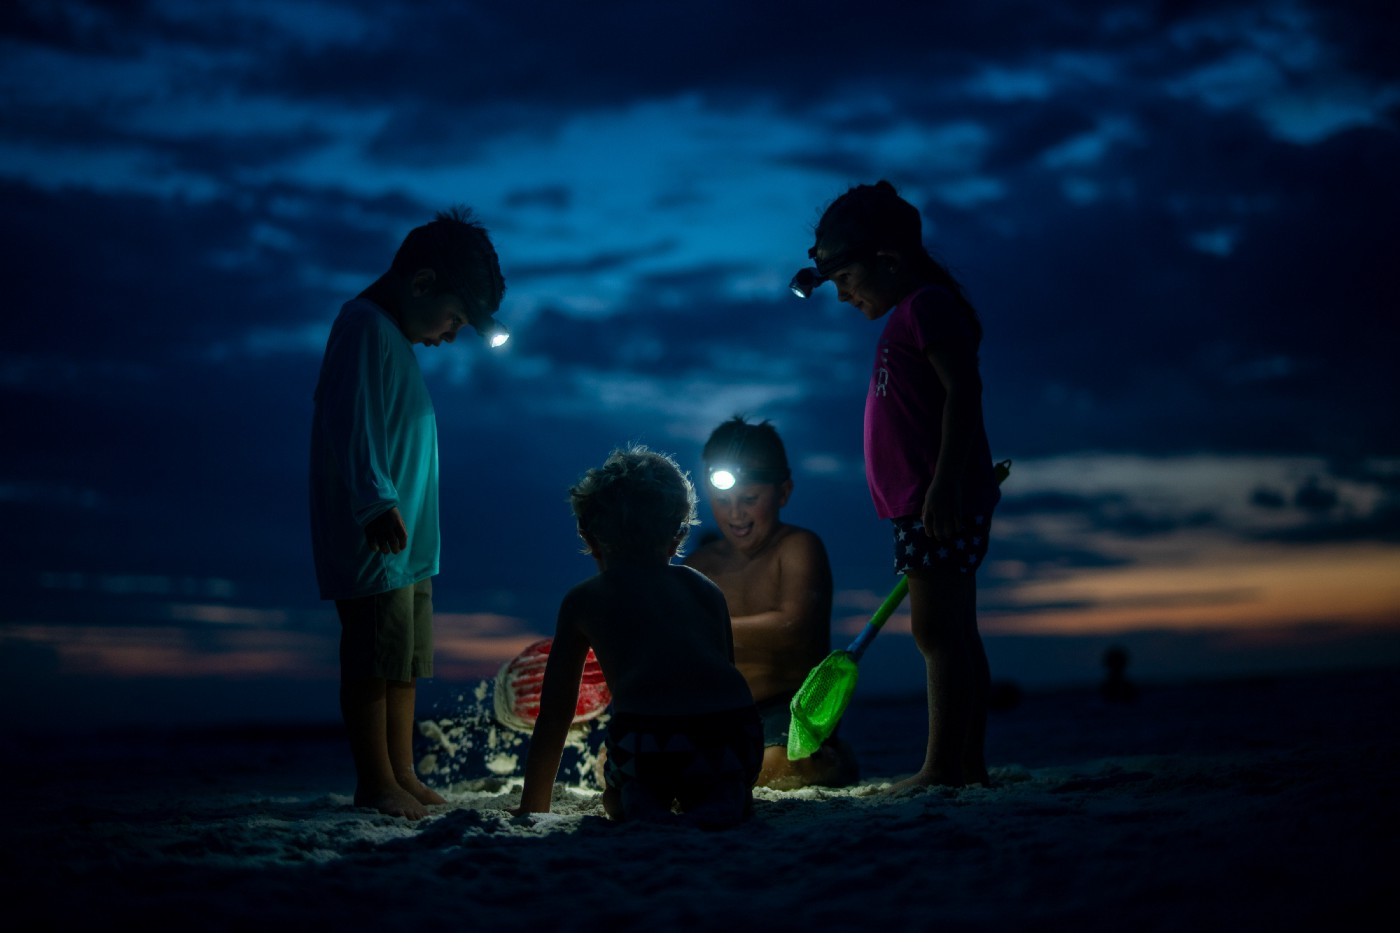 Four young boys wearing head lamps as they play on the beach with sand toys after the son has gone down.